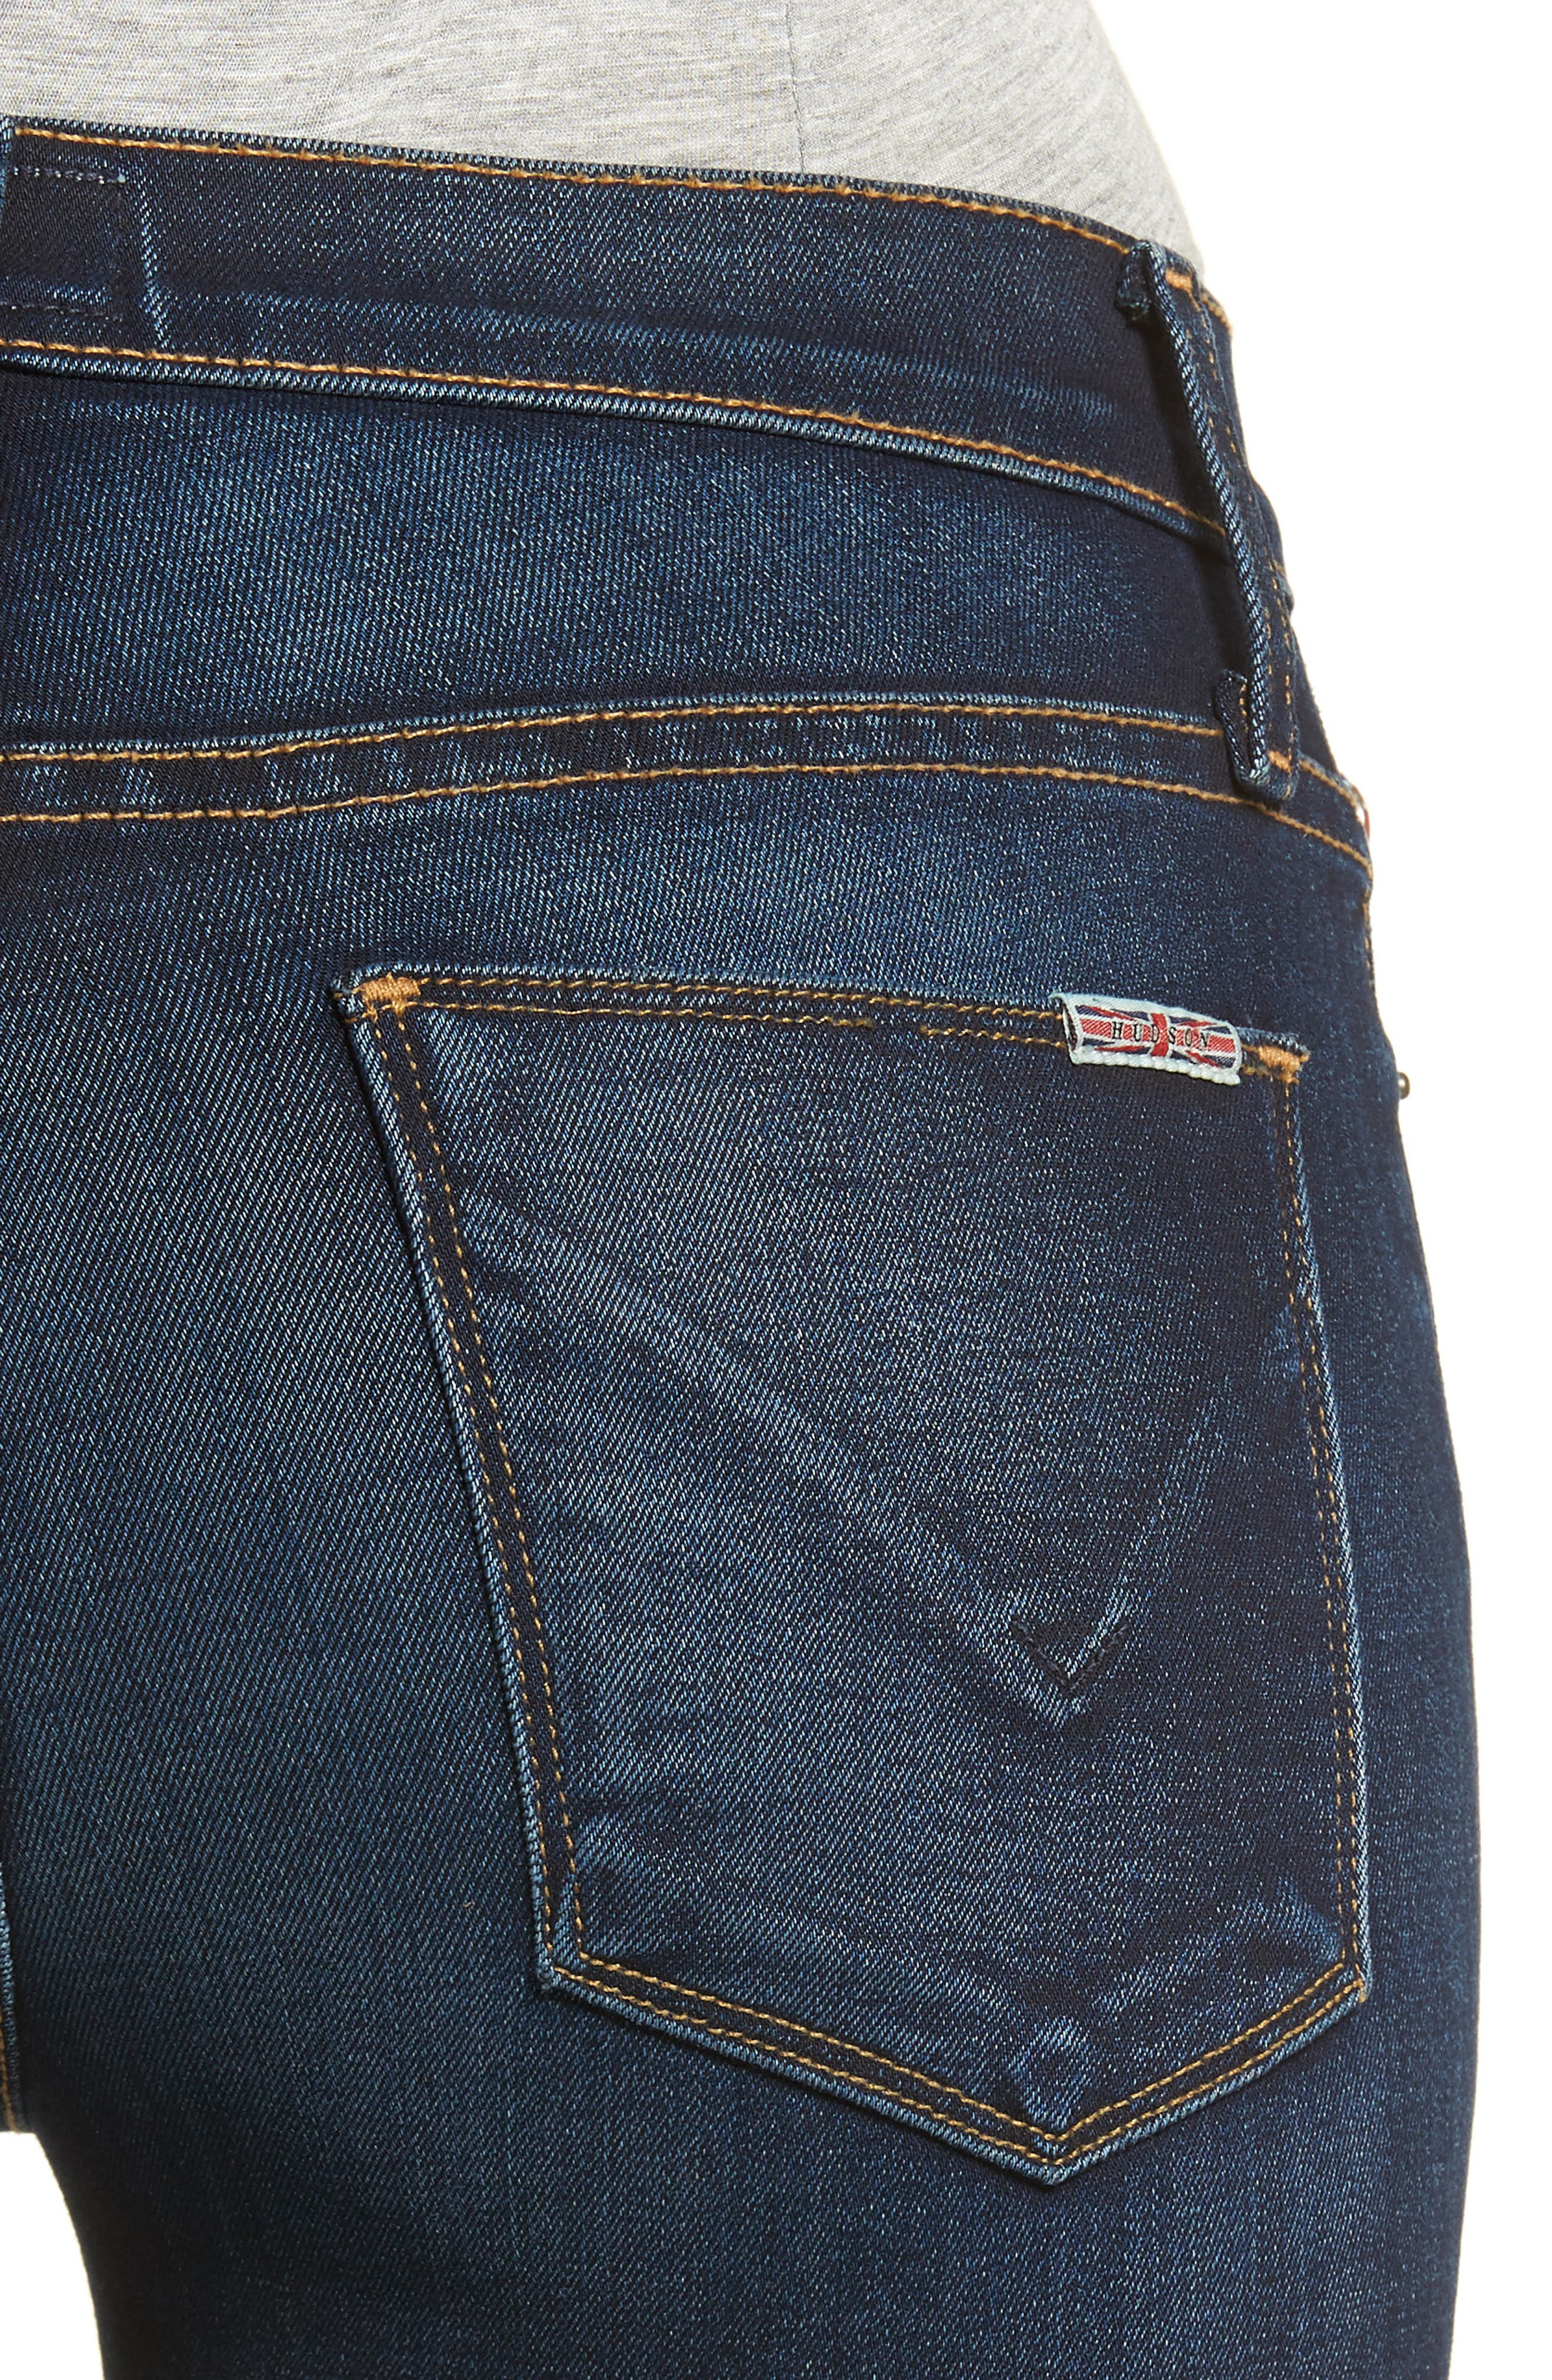 'Nico' Ankle Skinny Jeans,                             Alternate thumbnail 4, color,                             Corps